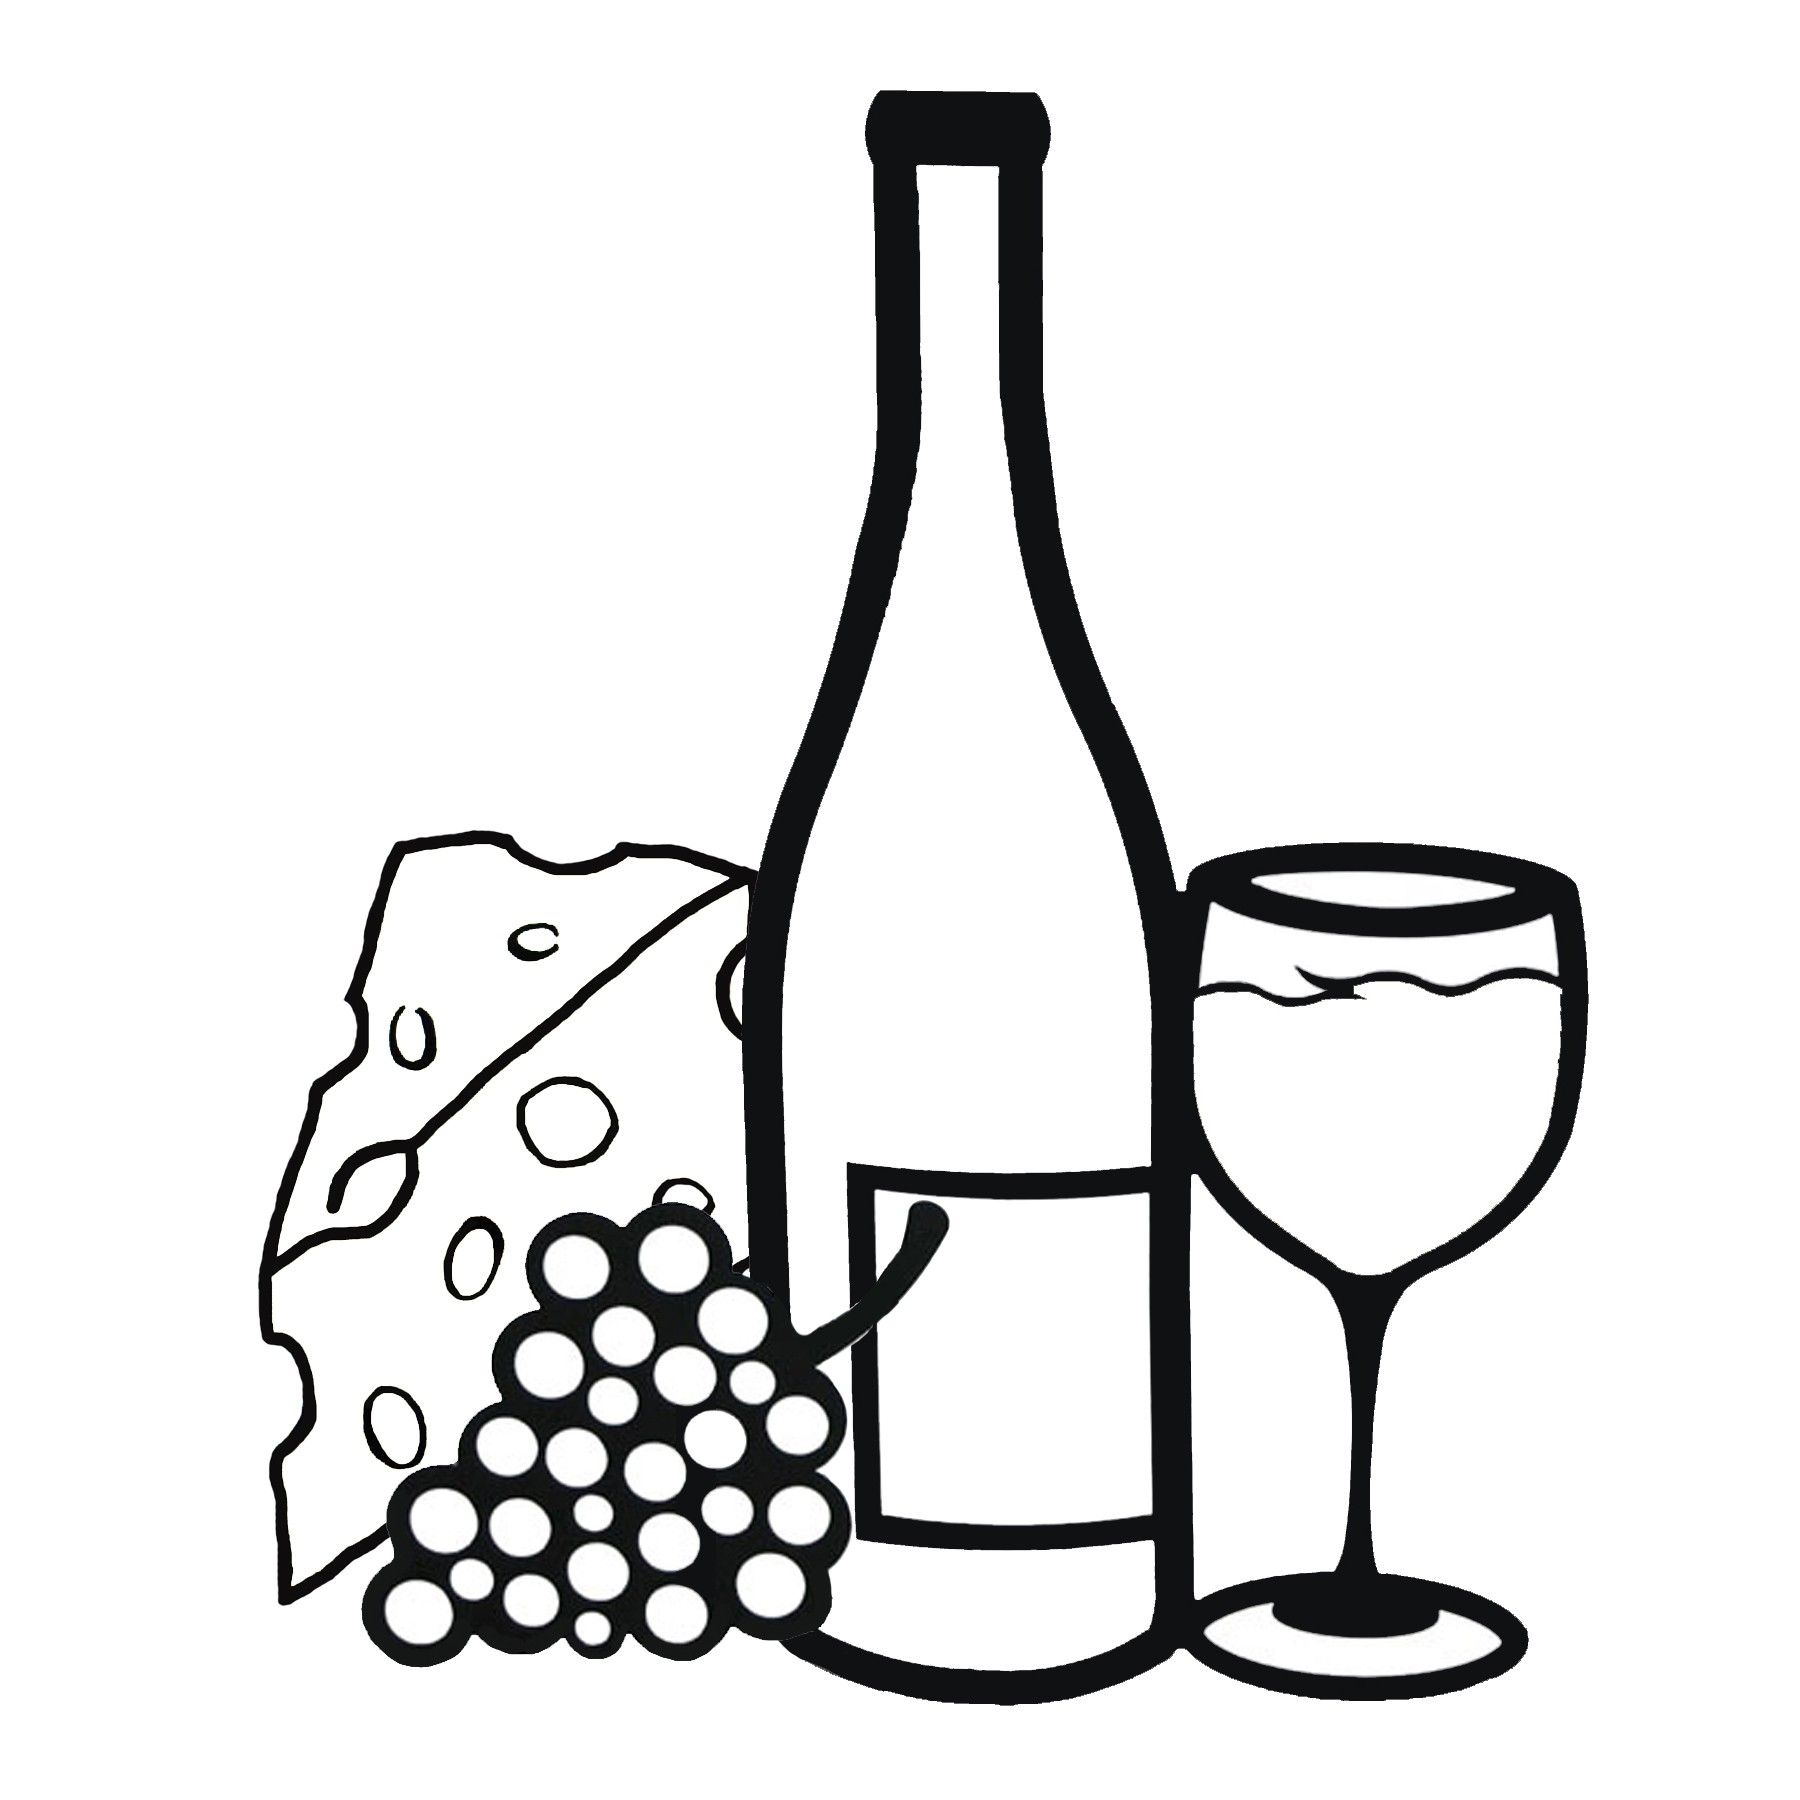 Images for and grapes. Chalk clipart wine glass